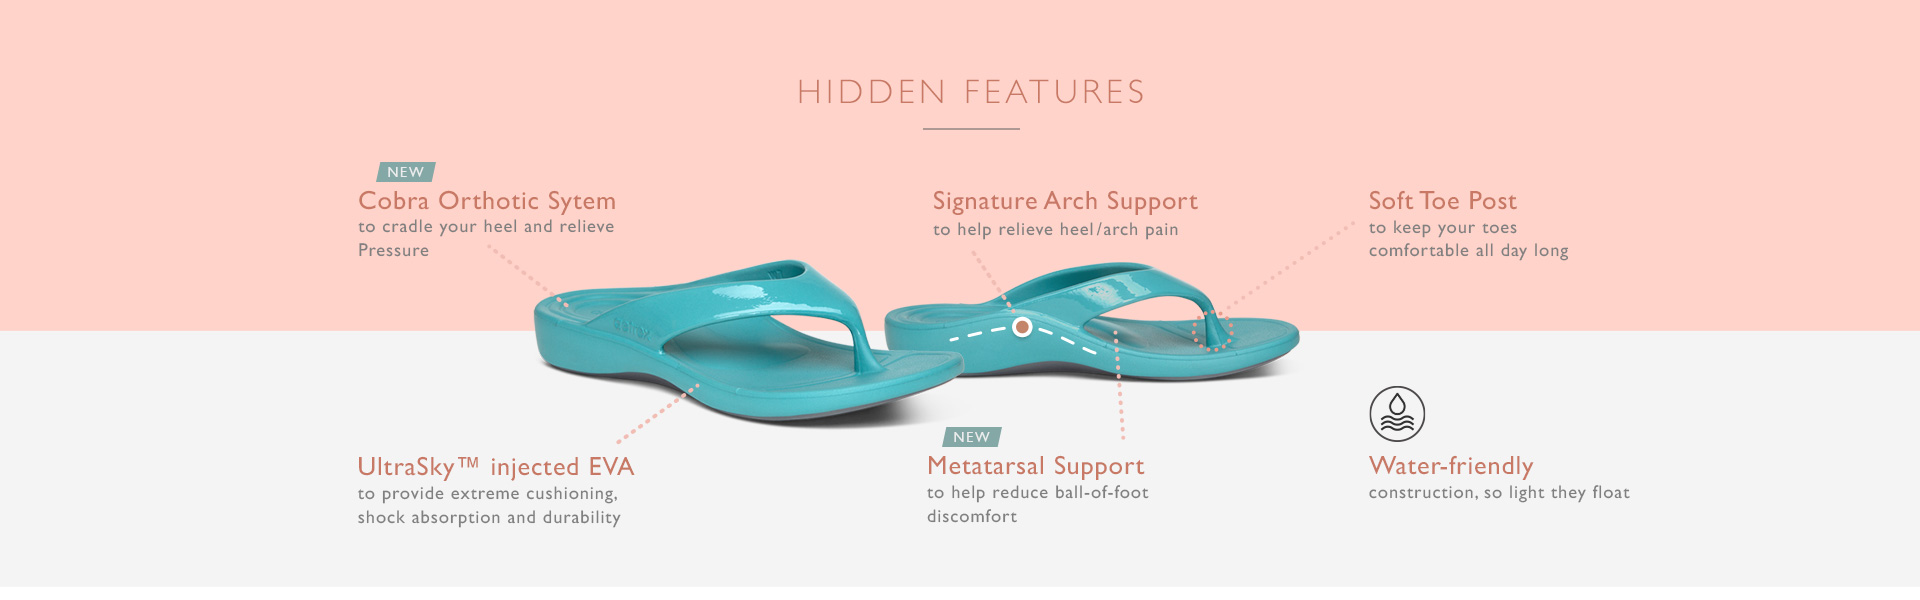 New Maui Orthotic Flip Flop